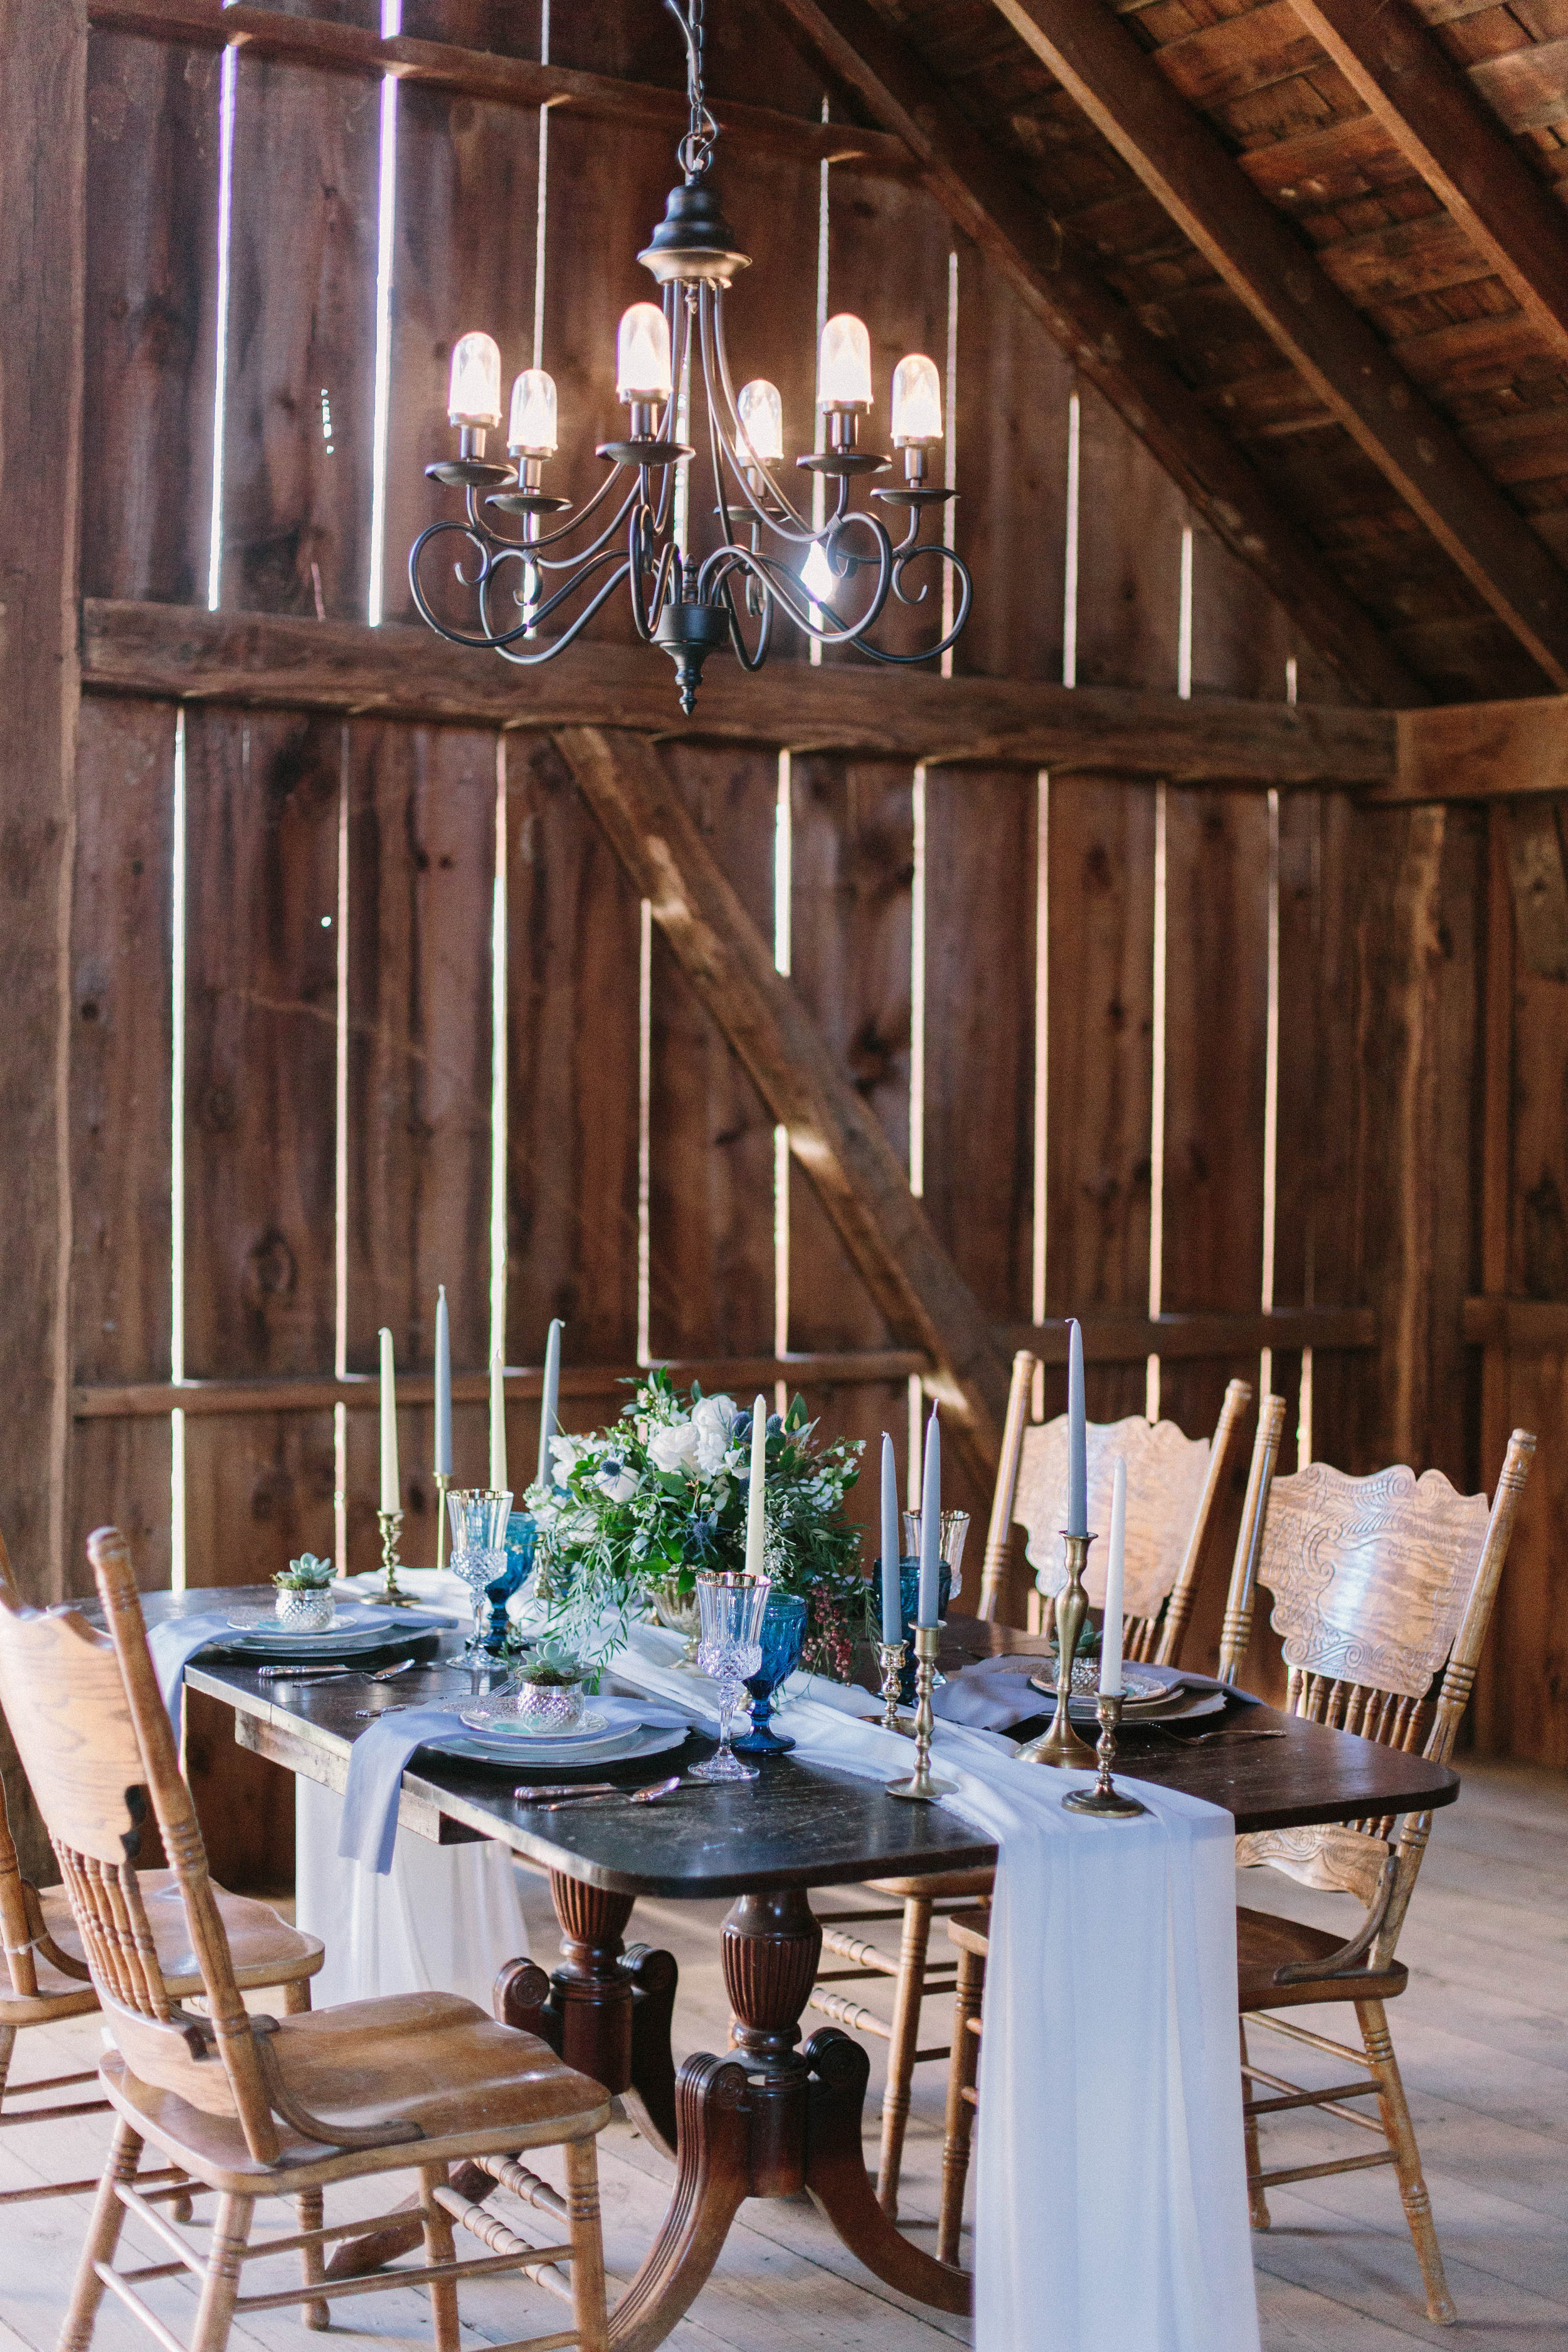 2017 Styled Shoot At The Pour Vineyard Veronica Young Photog-0002.jpg